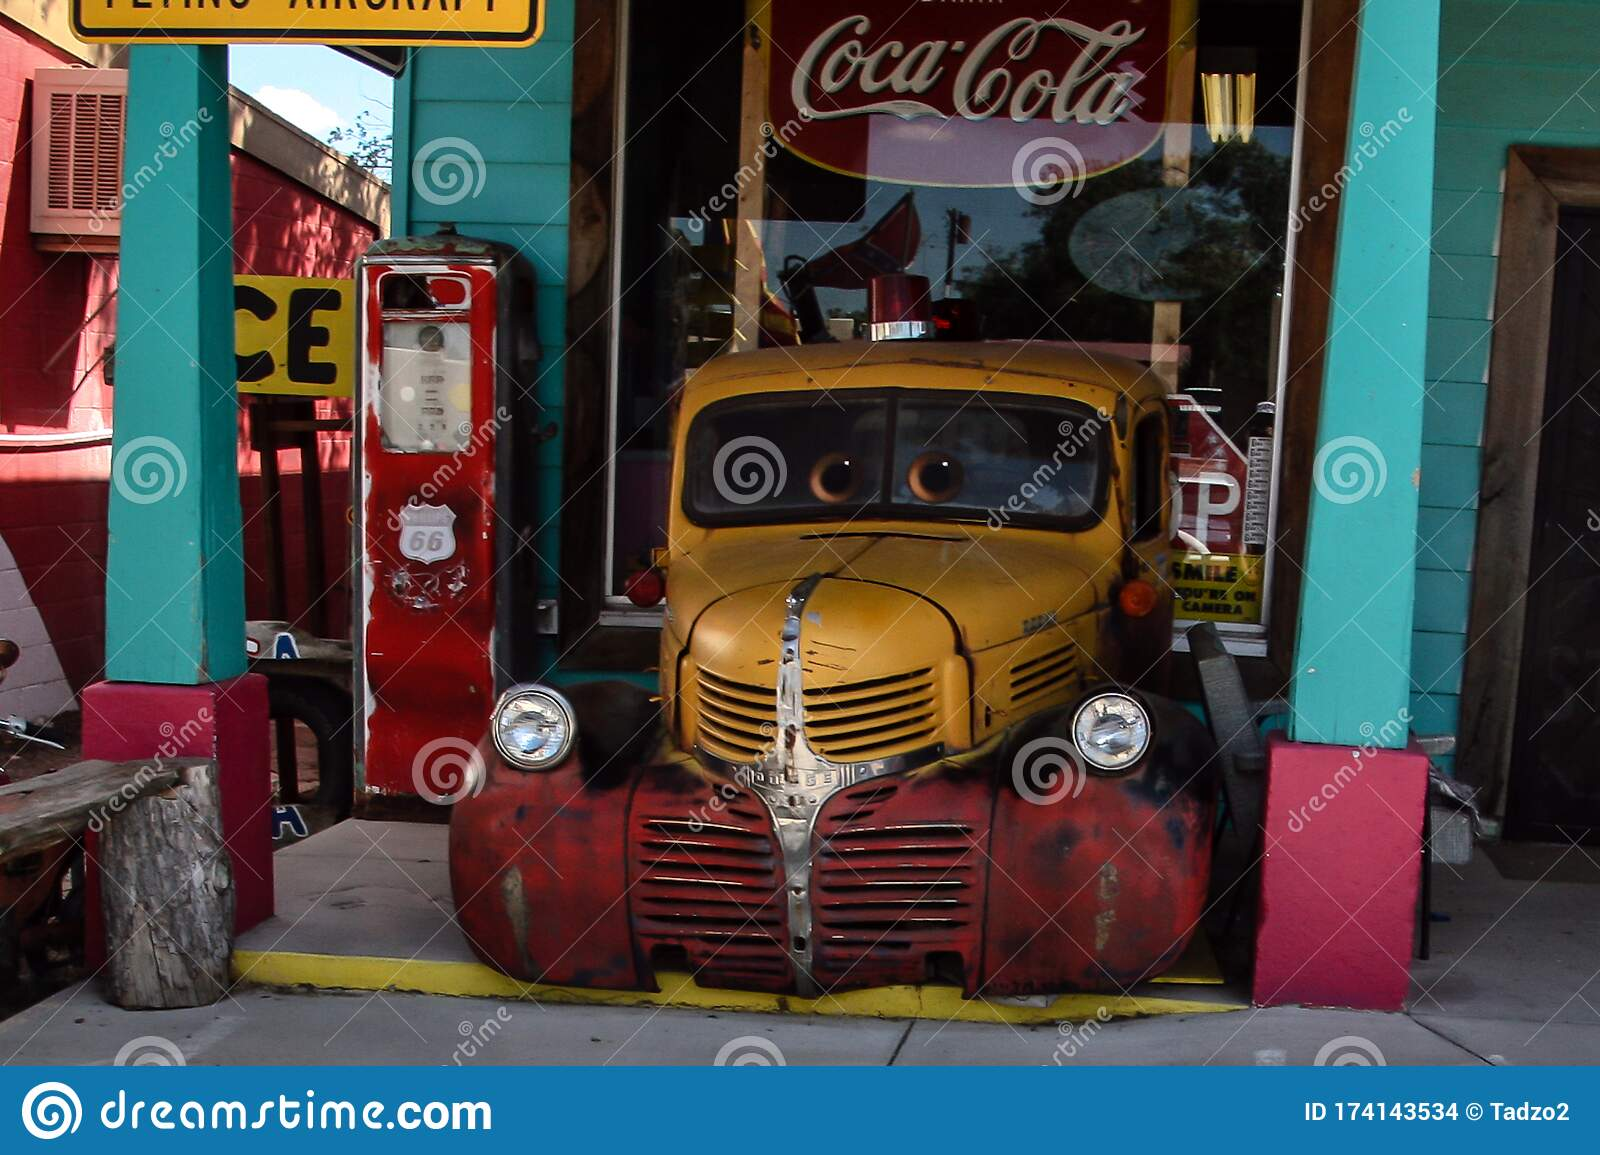 Usa Us Route 66 Shops Along Route 66 With Old Cars Inspired By Disney S Cars Movie Editorial Stock Image Image Of Vacation Tourism 174143534